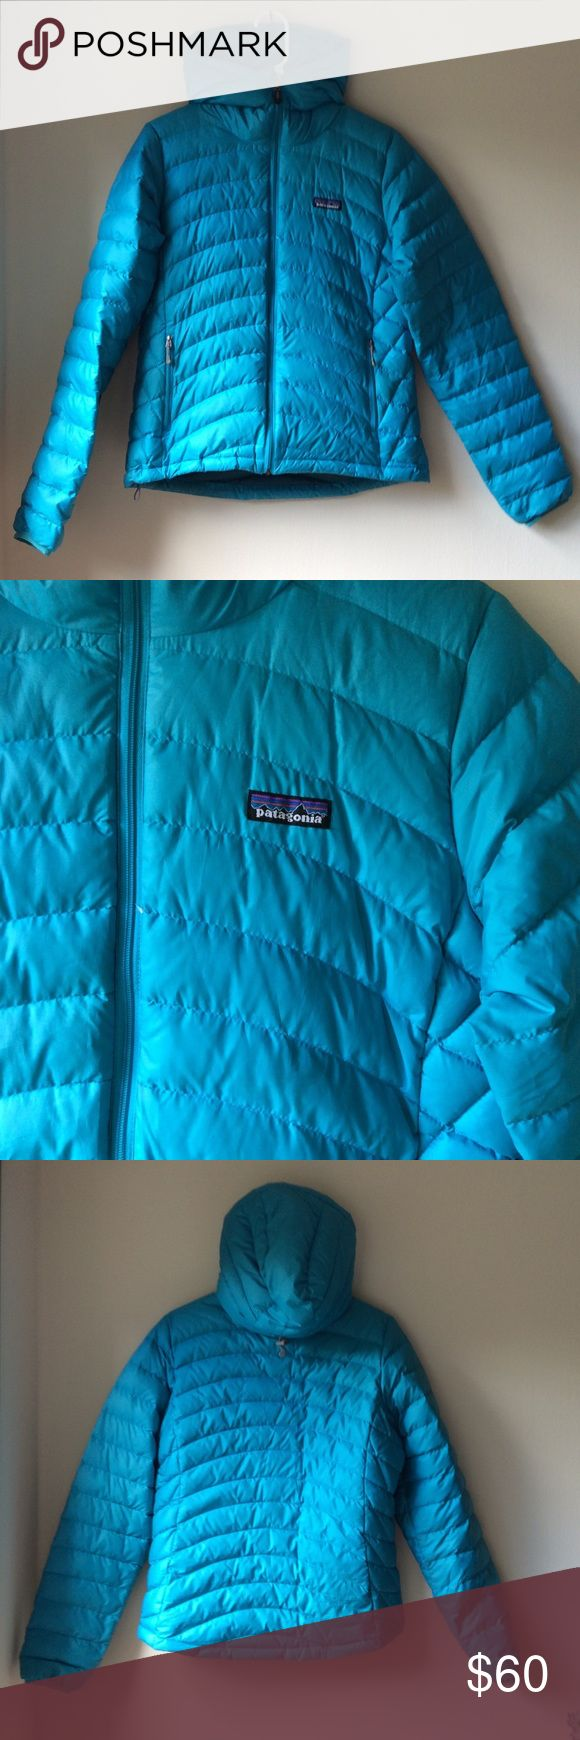 Patagonia down sweater with hood MOVING OVERSEAS: MUST GO (or go to Goodwill) !! Patagonia down sweater with hood. EXCELLENT condition - no holes, tears, or feathers escaping. Fun, bright blue! Perfect for camping or backpacking (or just winter!) Patagonia Jackets & Coats Puffers